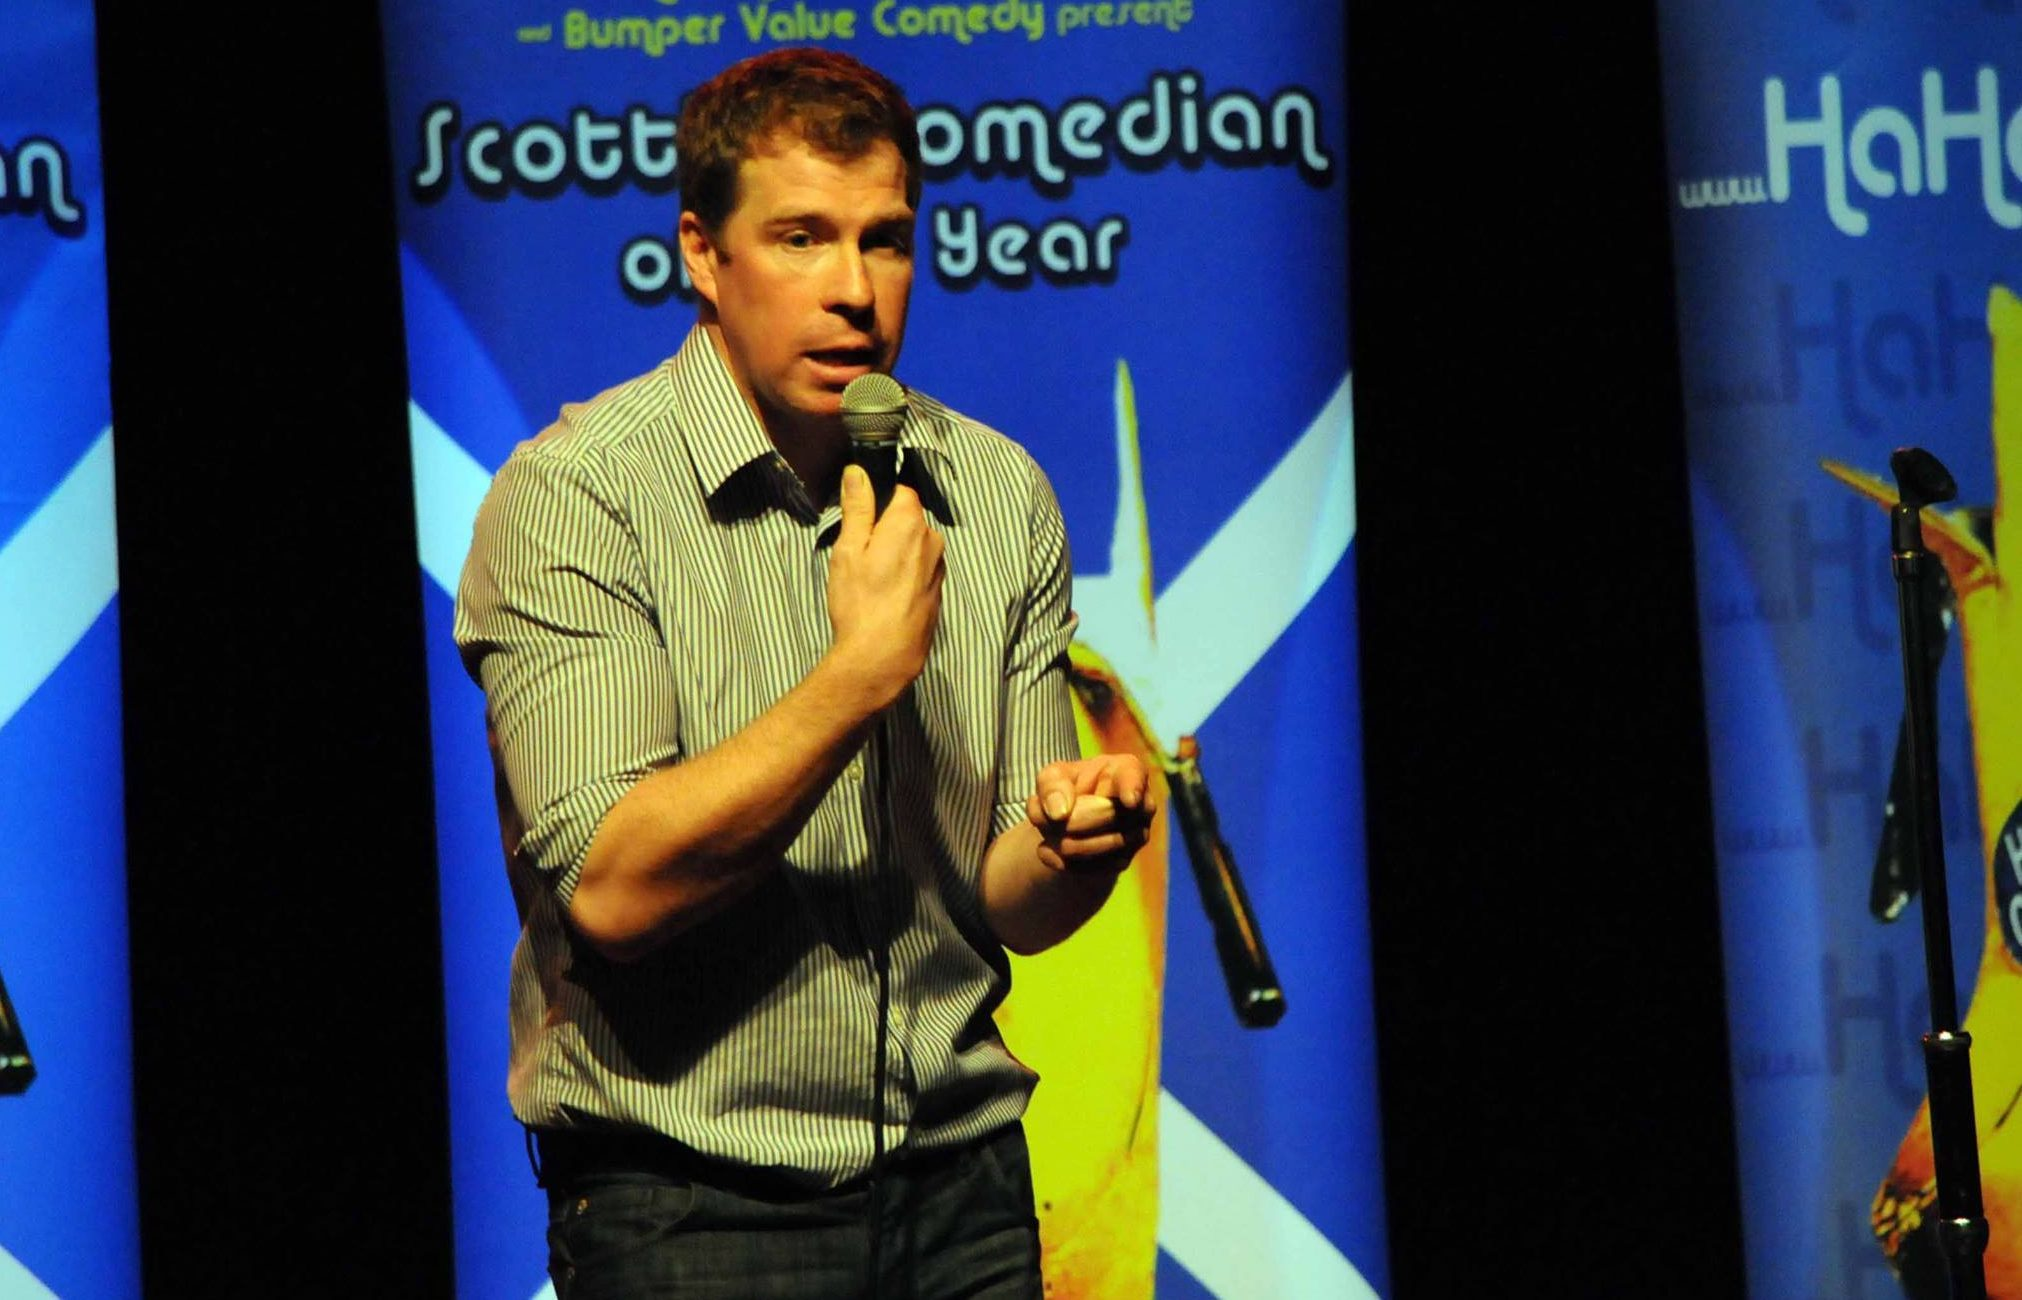 Comedian Jim Smith on stage.